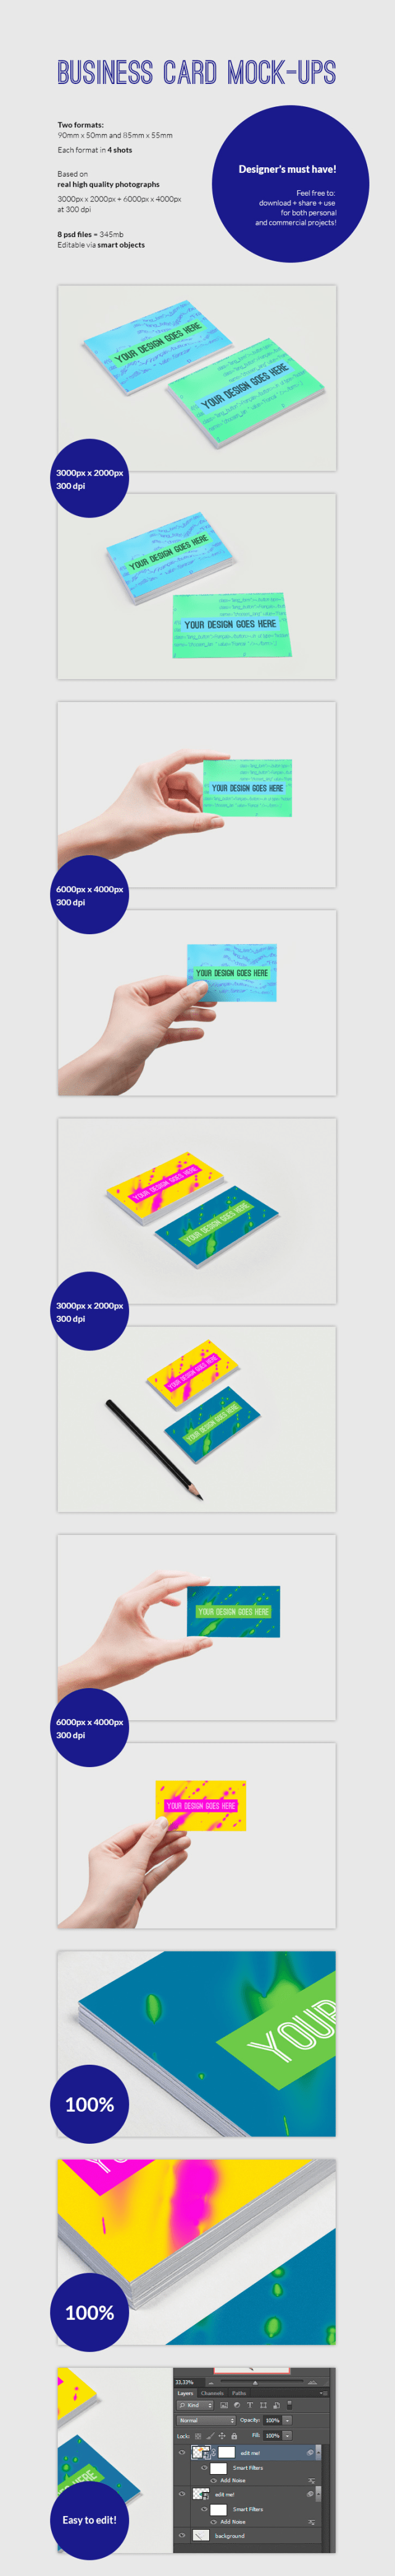 Free Business Card Mock-ups PSD Download